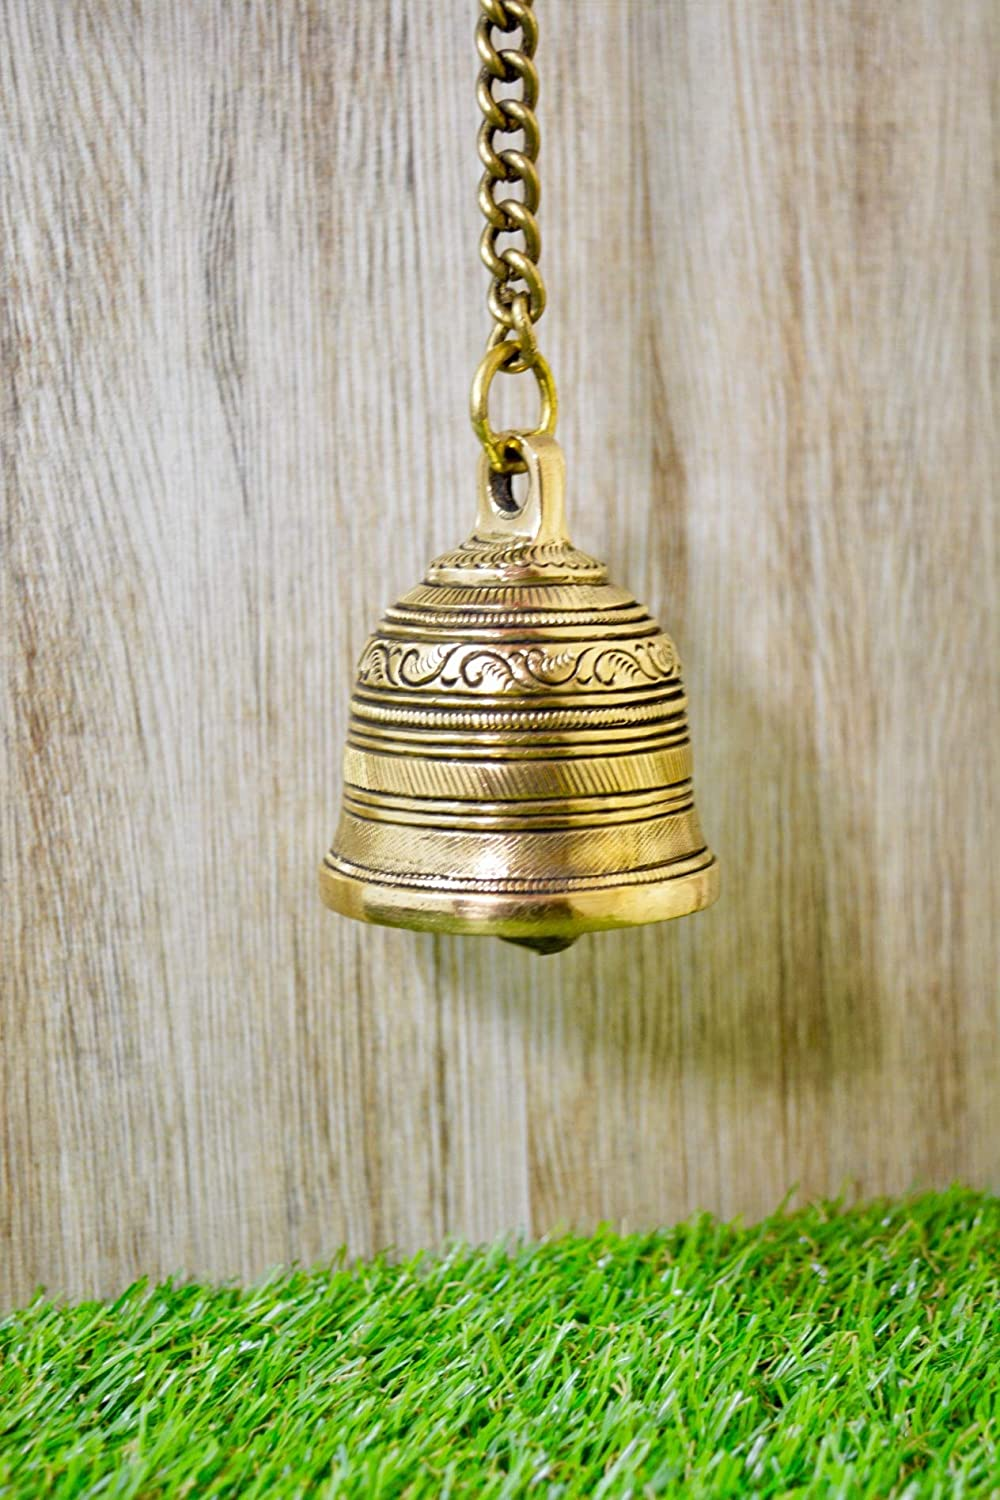 Aakrati Vintage Matte Wall Hanging Bell with Brass Chain and Hook for Gates, Home, Office and Temple